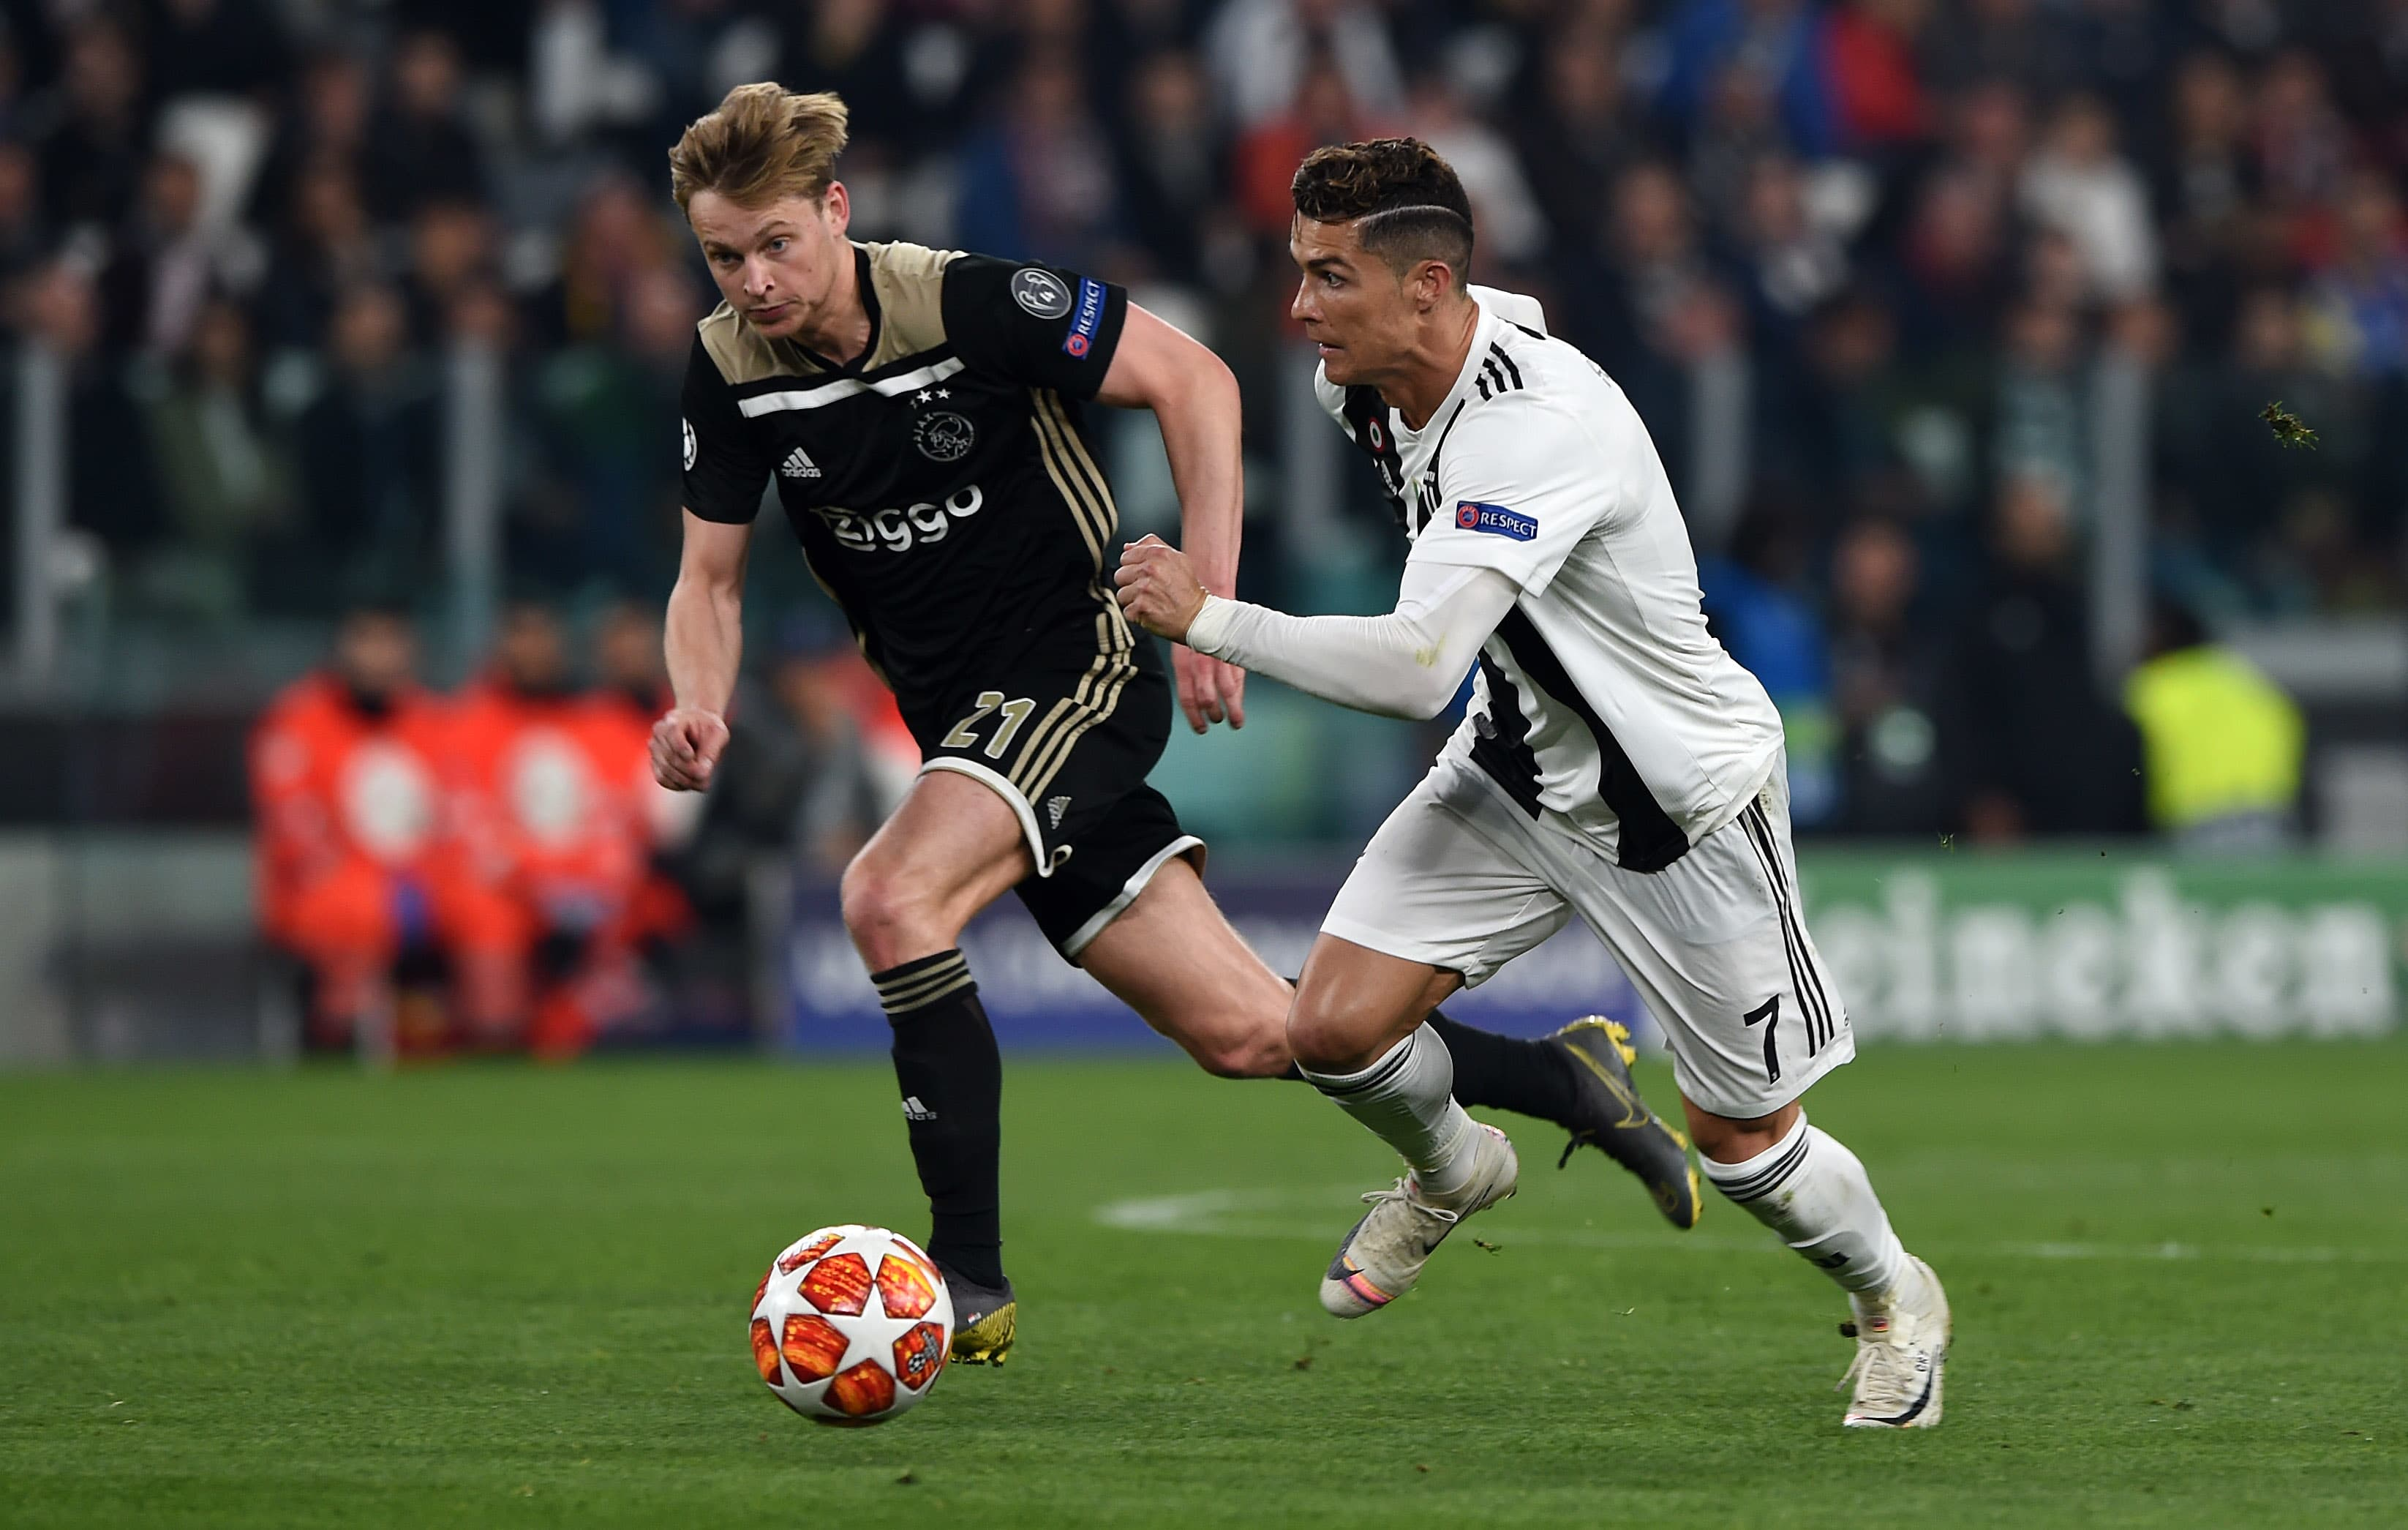 ViacomCBS reaches deal to stream UEFA Champions League matches 123